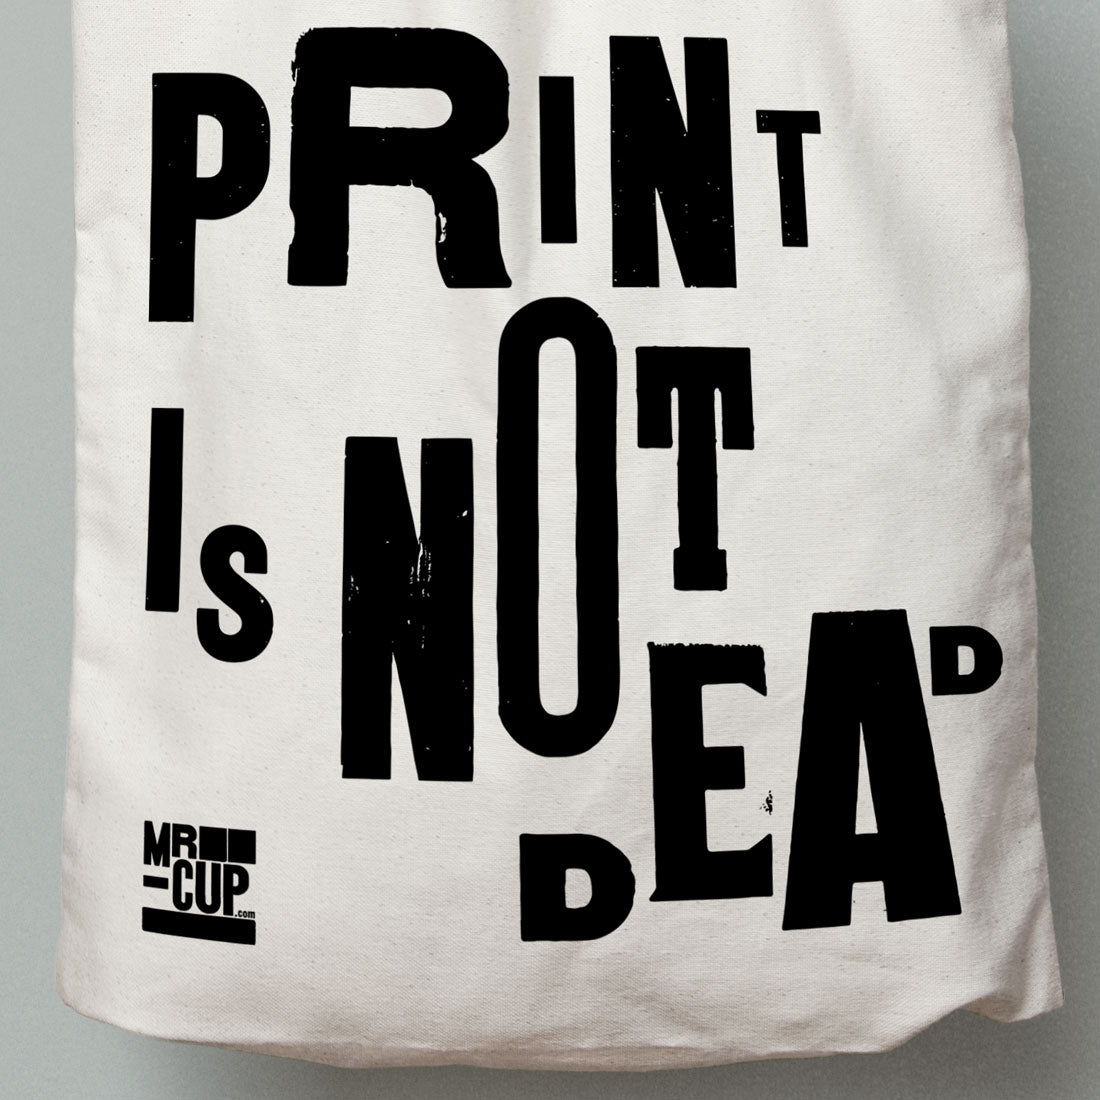 PRINT IS NOT DEAD Tote Bag - MR CUP